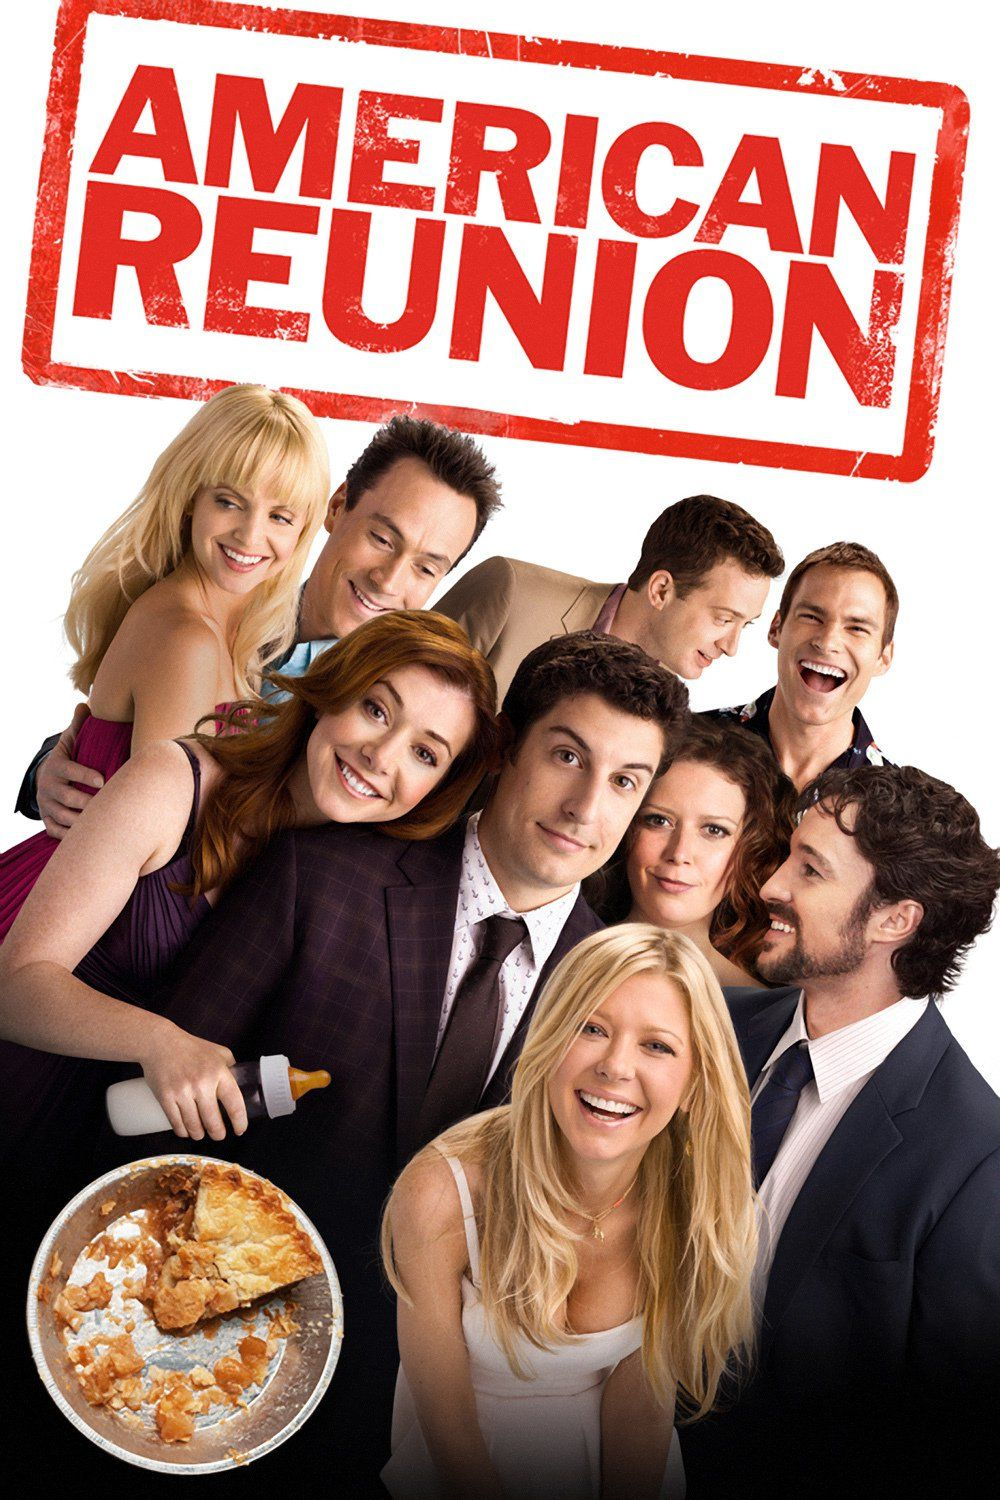 In The Comedy American Reunion All The American Pie Characters We